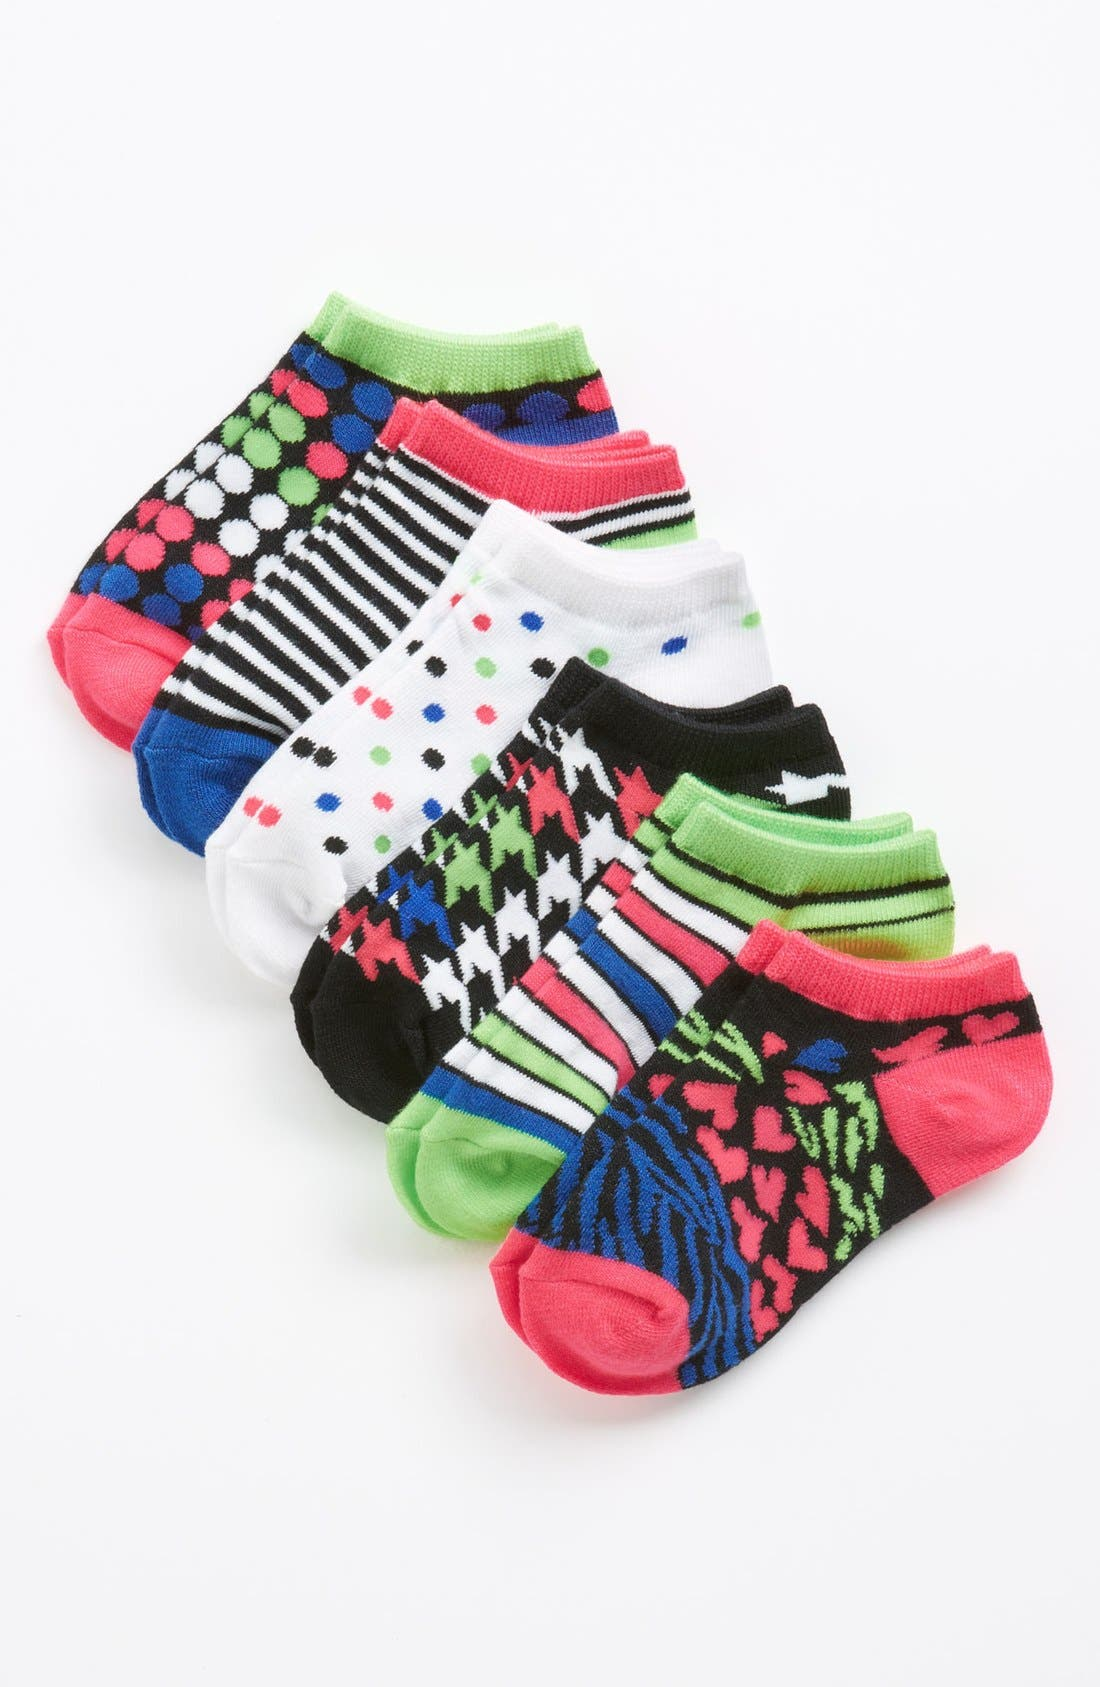 Main Image - Nordstrom 'Mod Mix' Low Cut Socks (6-Pack) (Toddler, Little Girls & Big Girls)